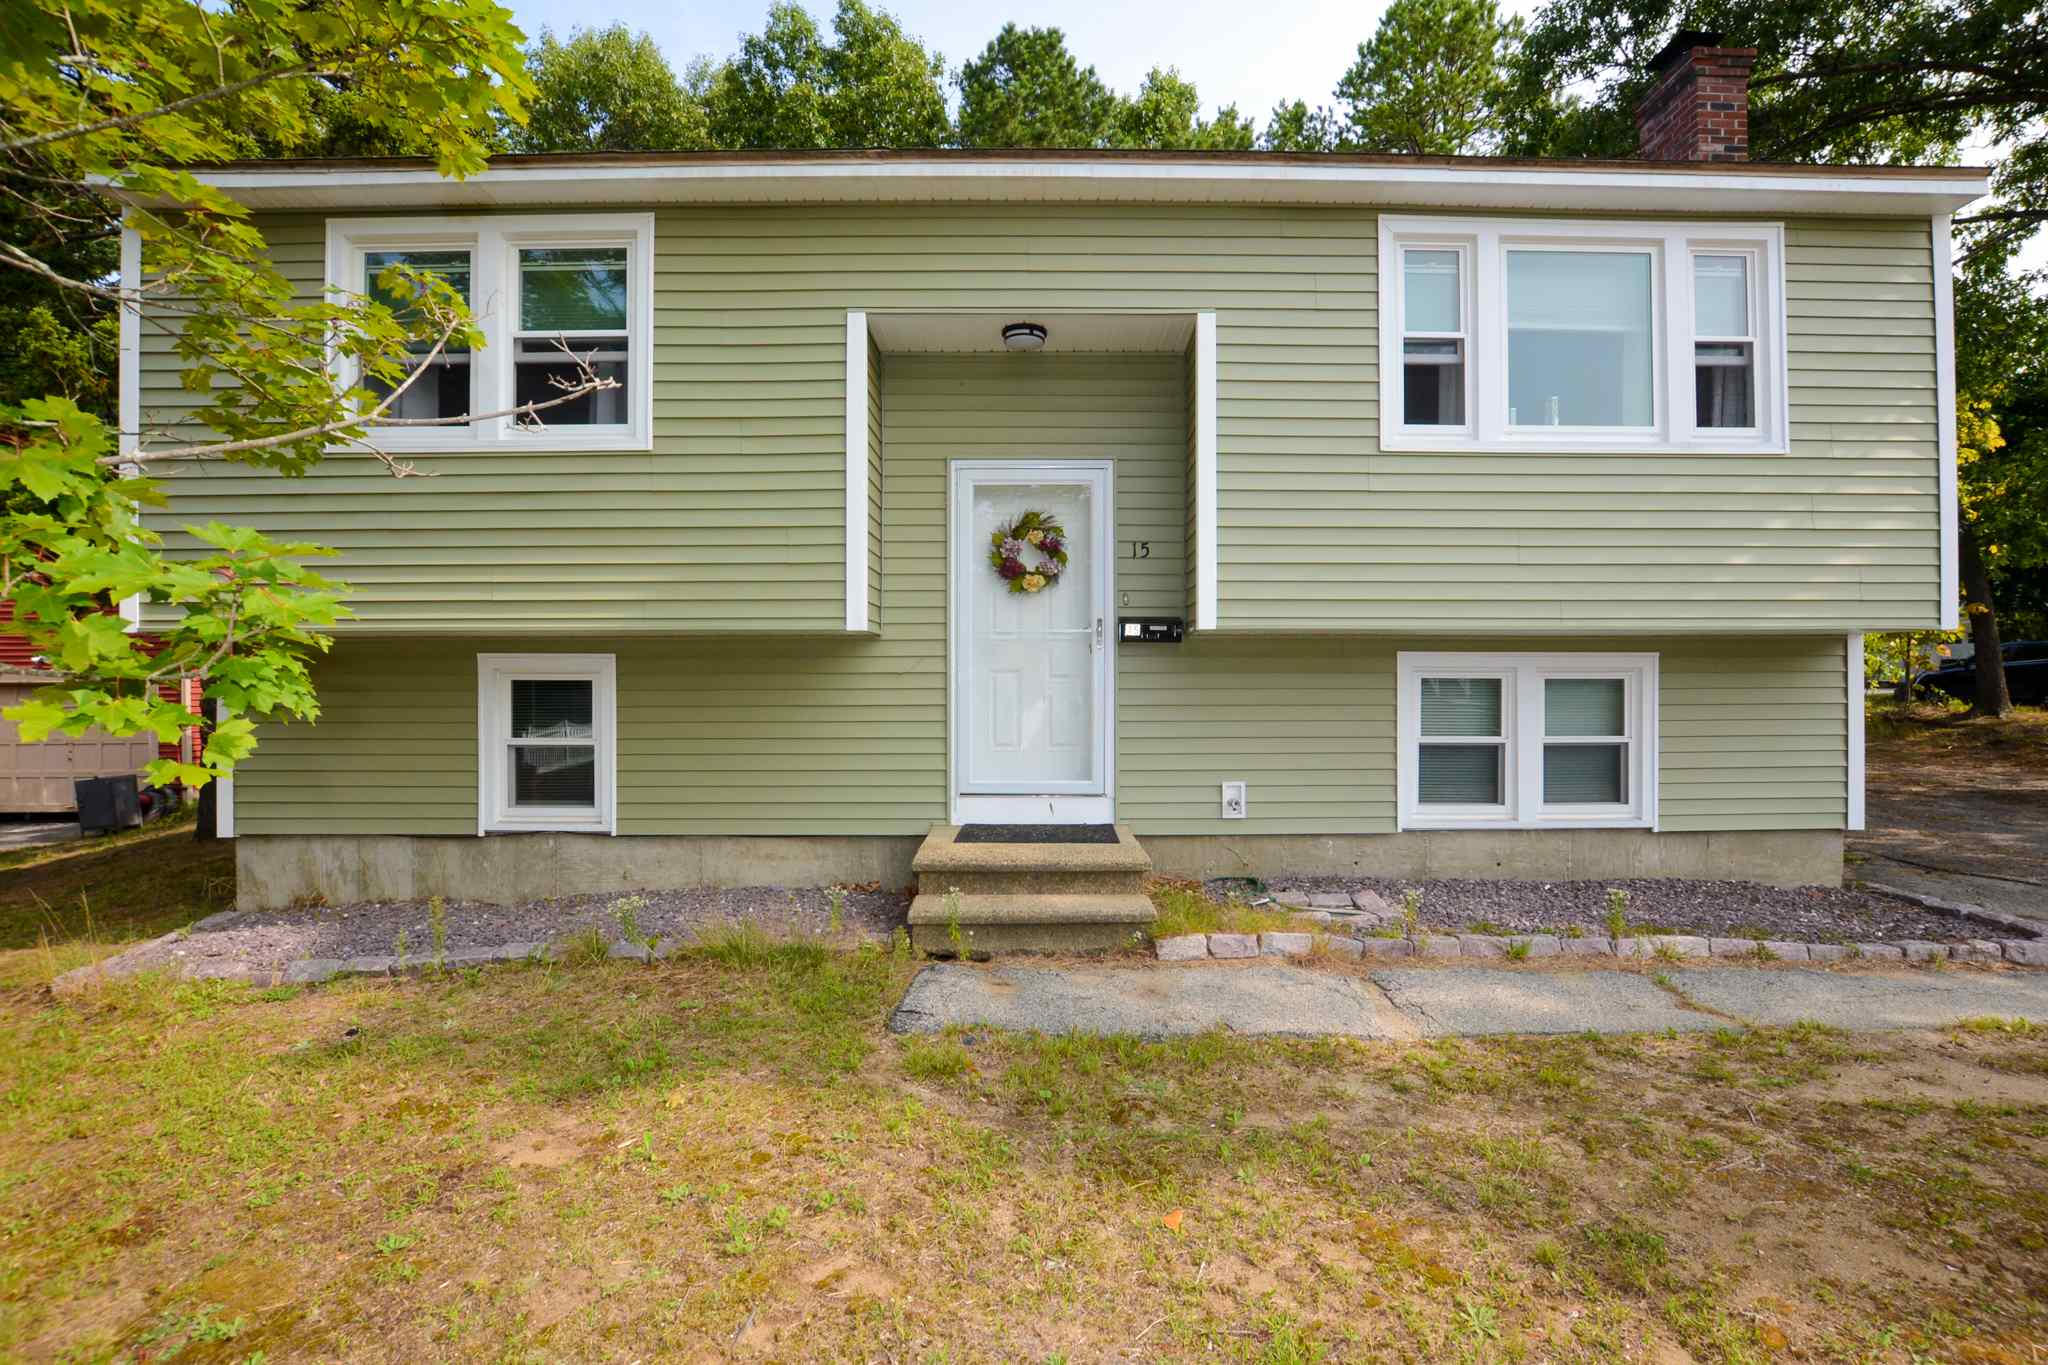 MLS 4828844: 15 Burnett Street, Nashua NH